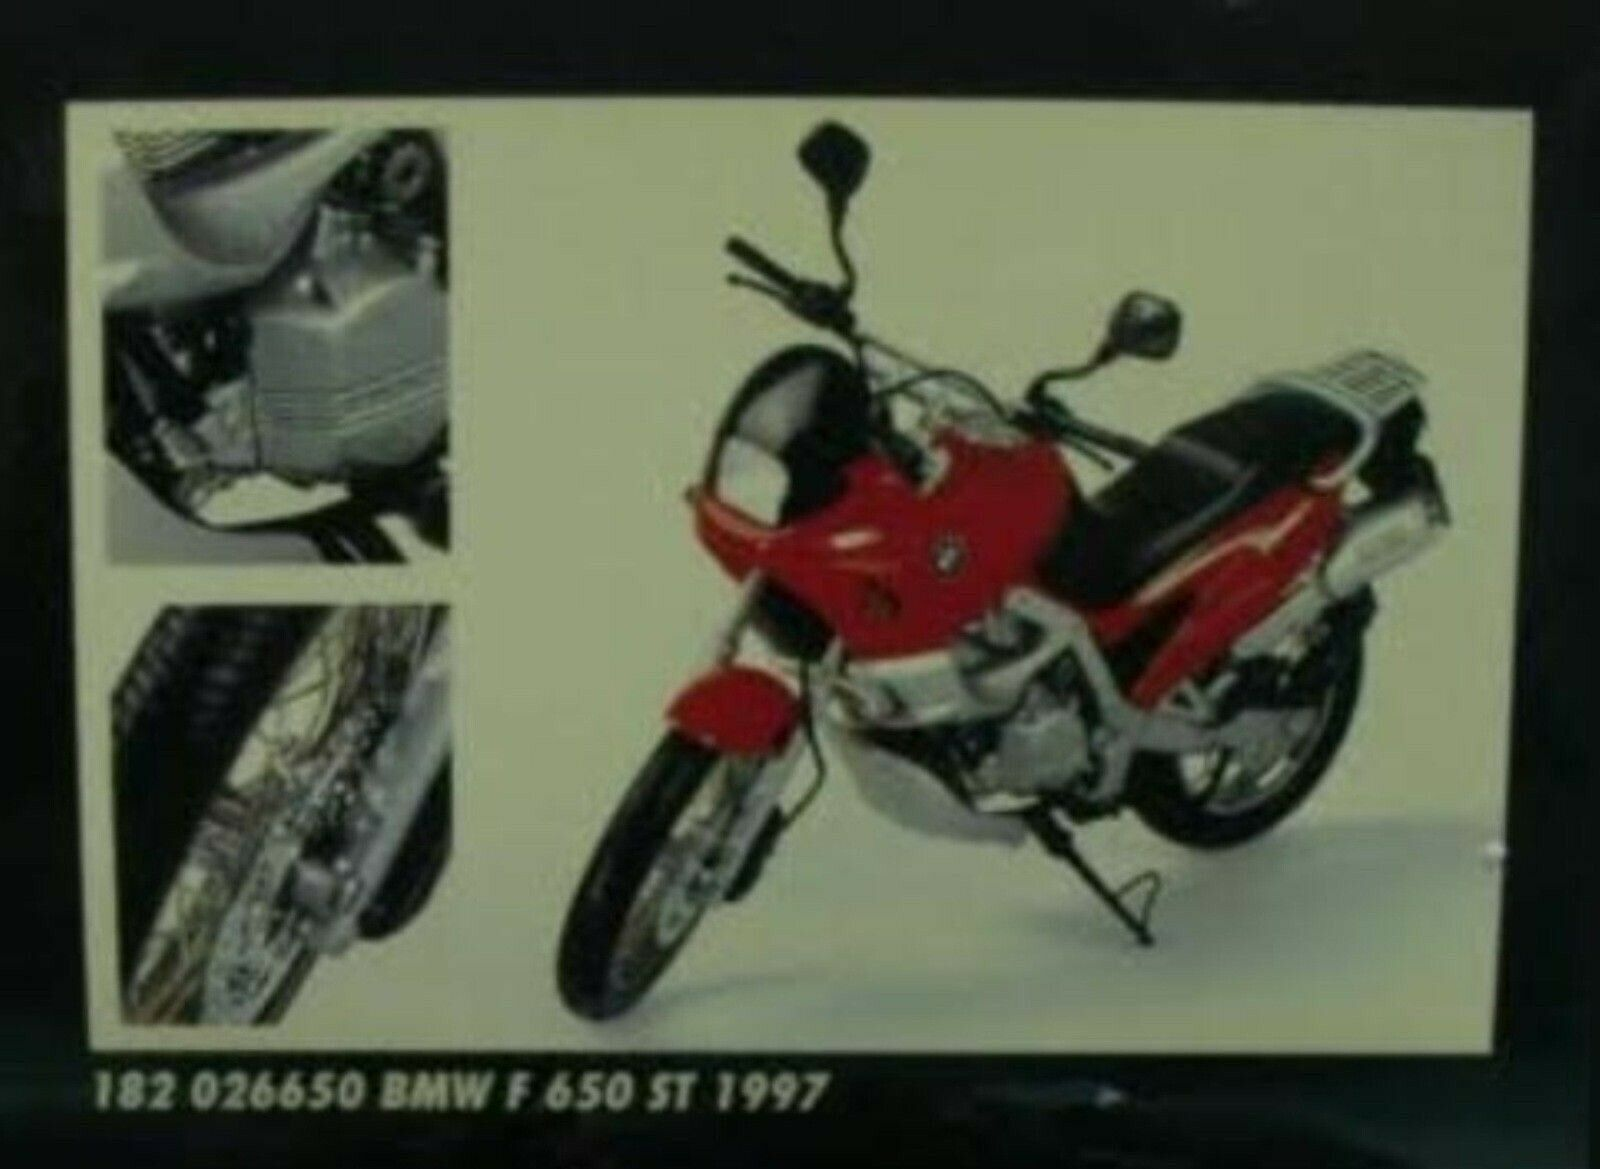 WOW EXTREMELY RARE BMW F650 ST Strada 1997 Red 1 18 Minichamps-R1100 K1200 R32